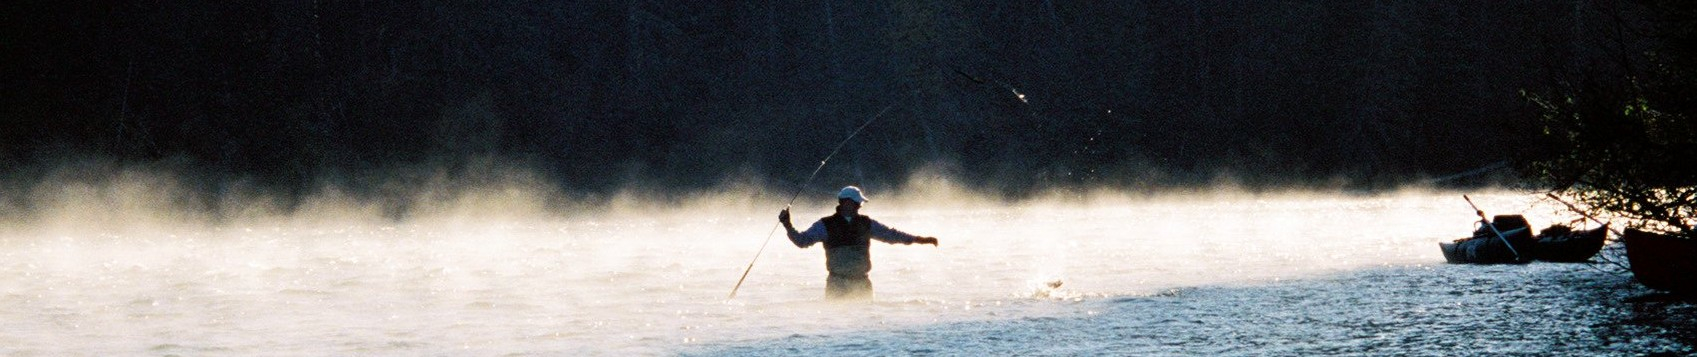 Panorama-catching trout in mist.jpg